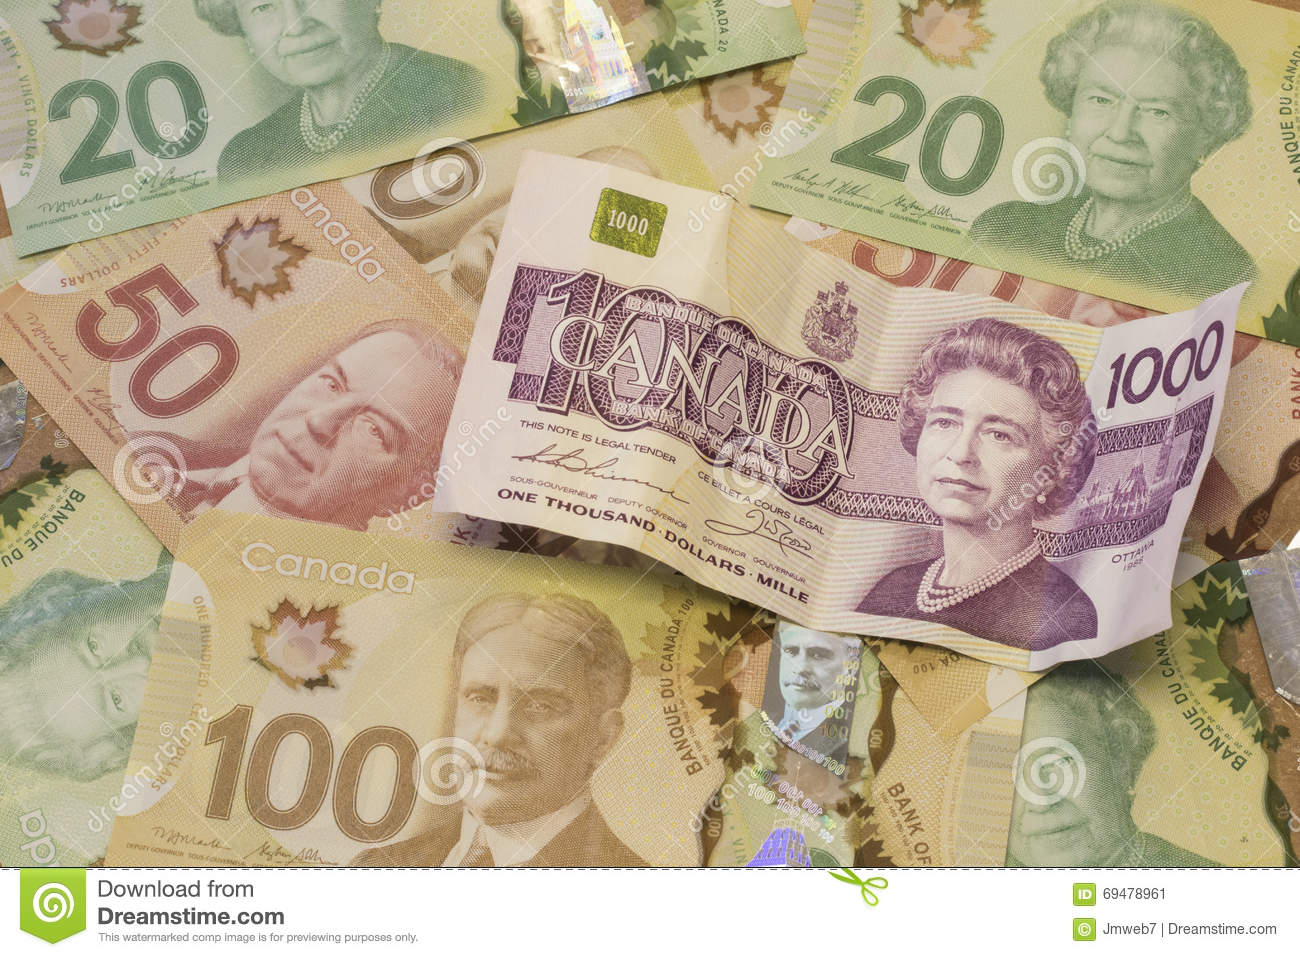 Canadian Dollar Currency/Bills Stock Image - Image of number